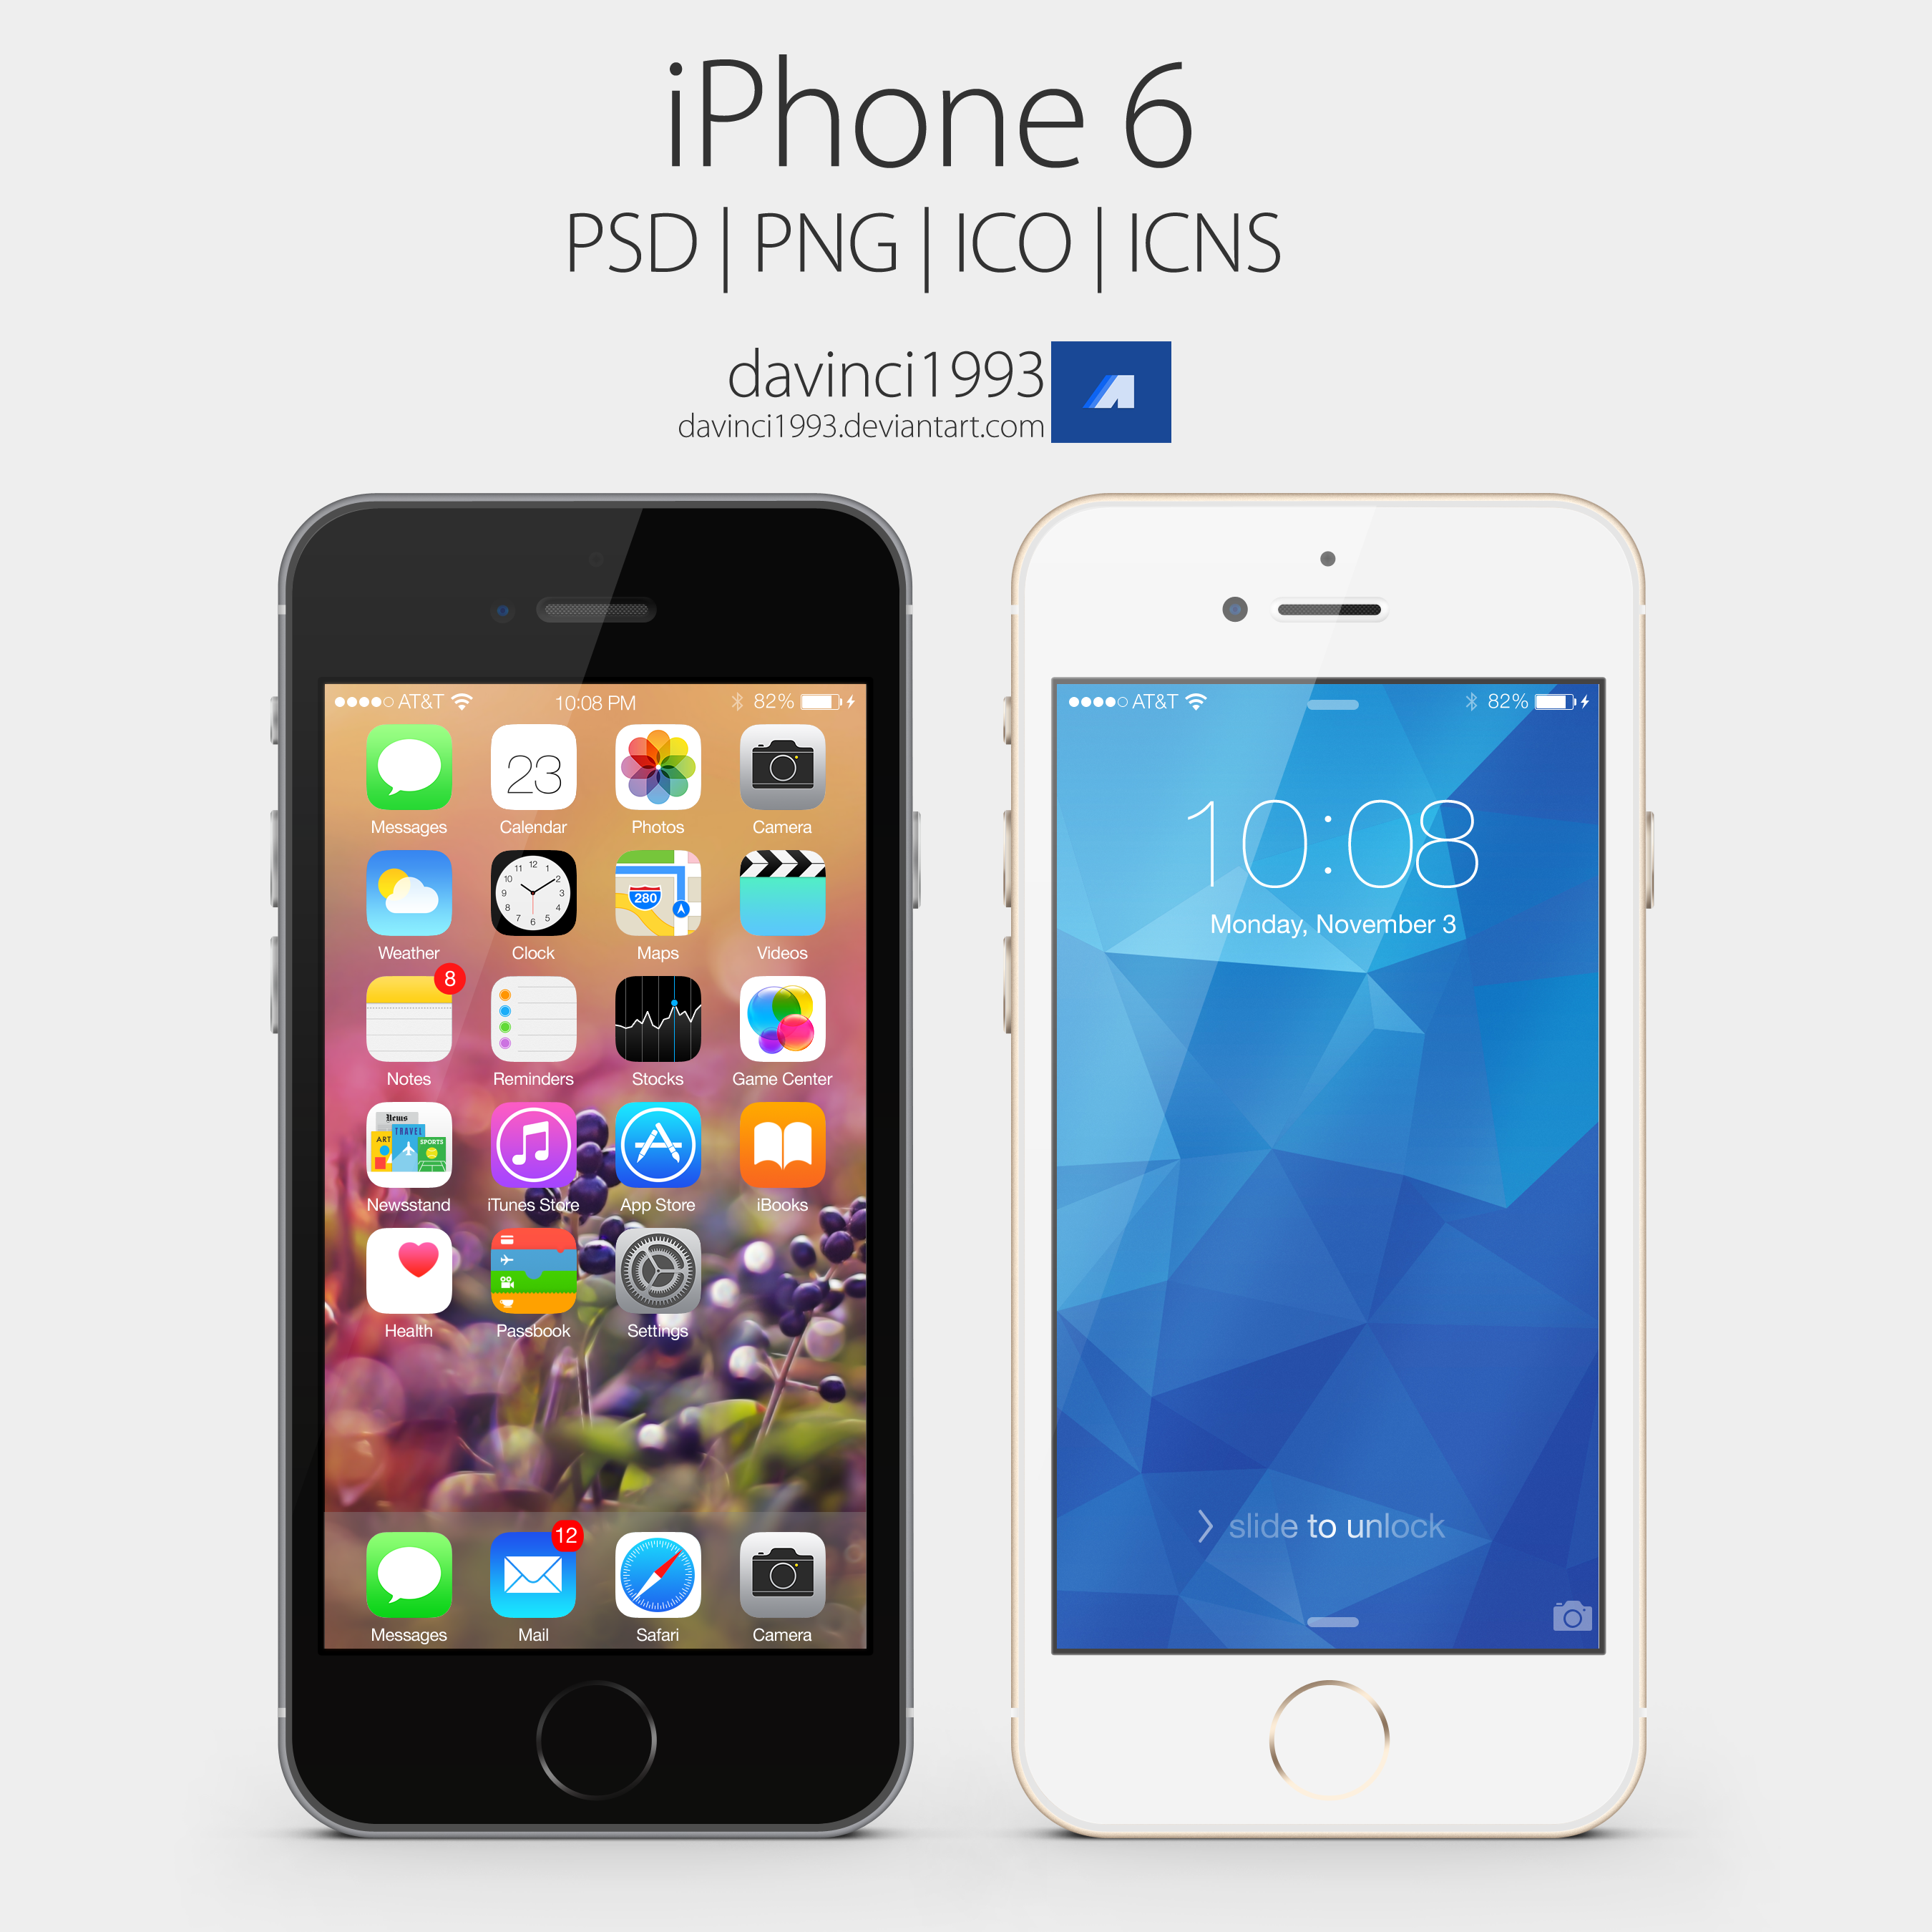 Apple Iphone 6 Psd Png Ico Icns By Davinci1993 On